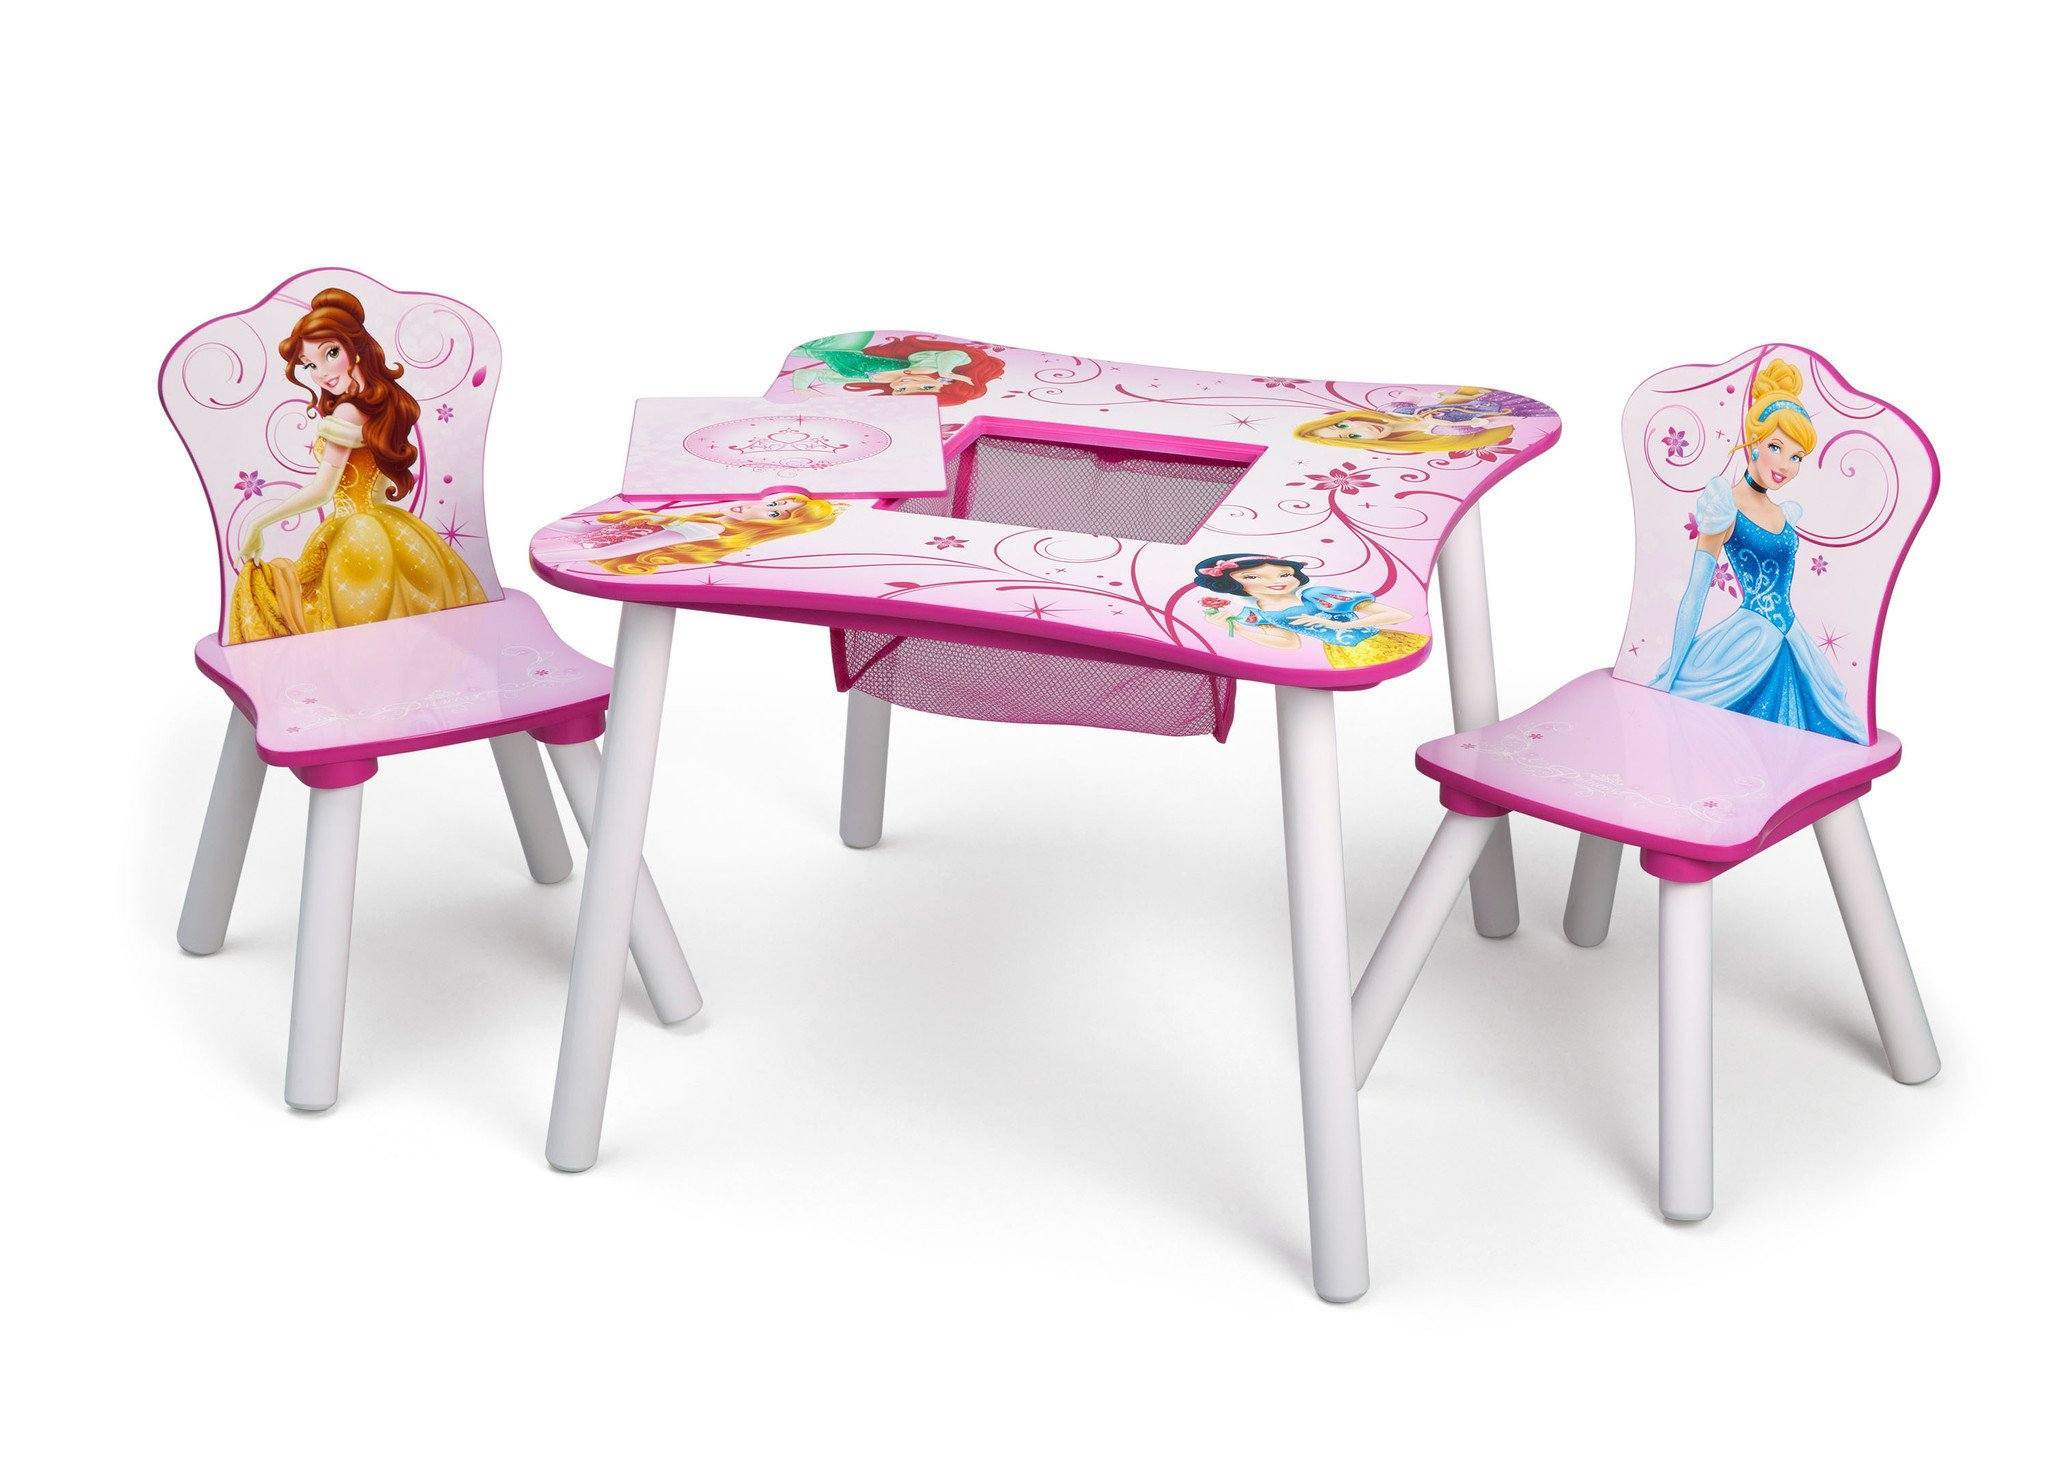 Princess Table & Chair Set with Storage